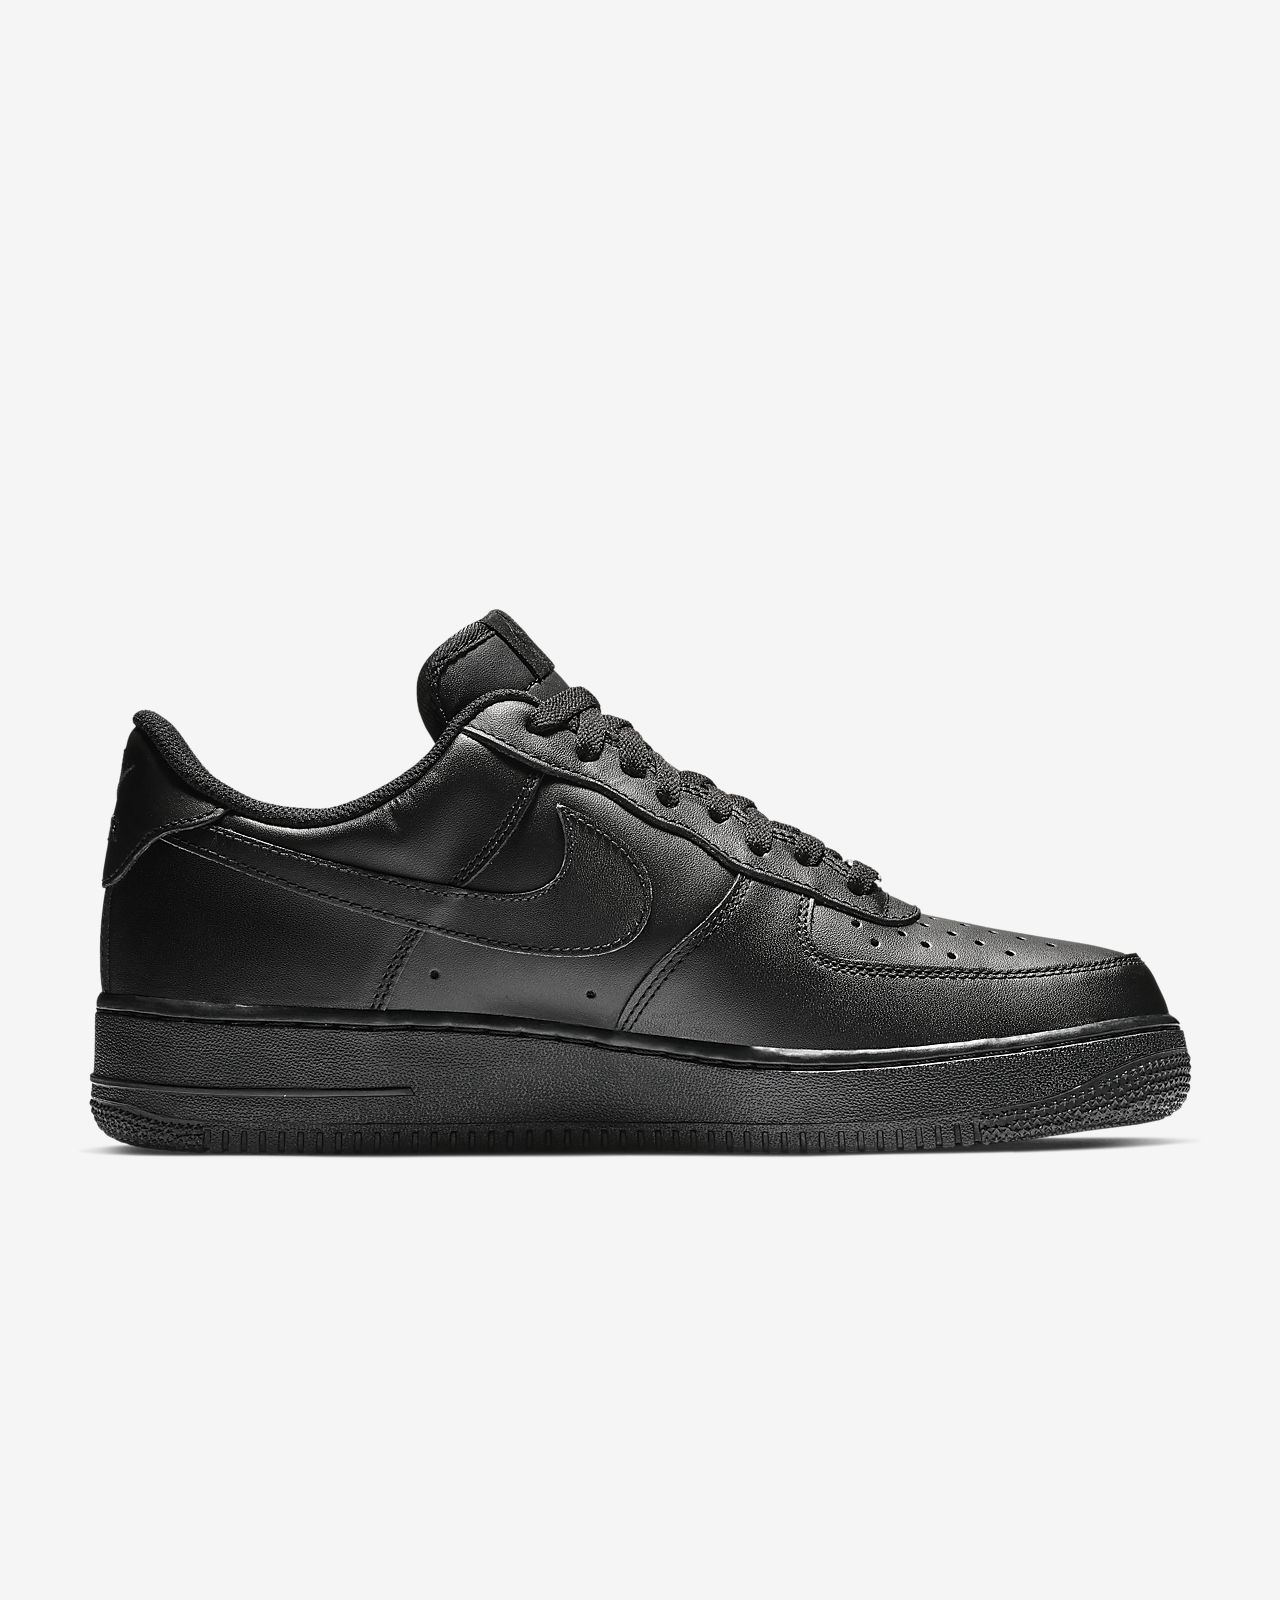 new arrival 9b0ef 64753 ... Chaussure Nike Air Force 1 07 pour Homme